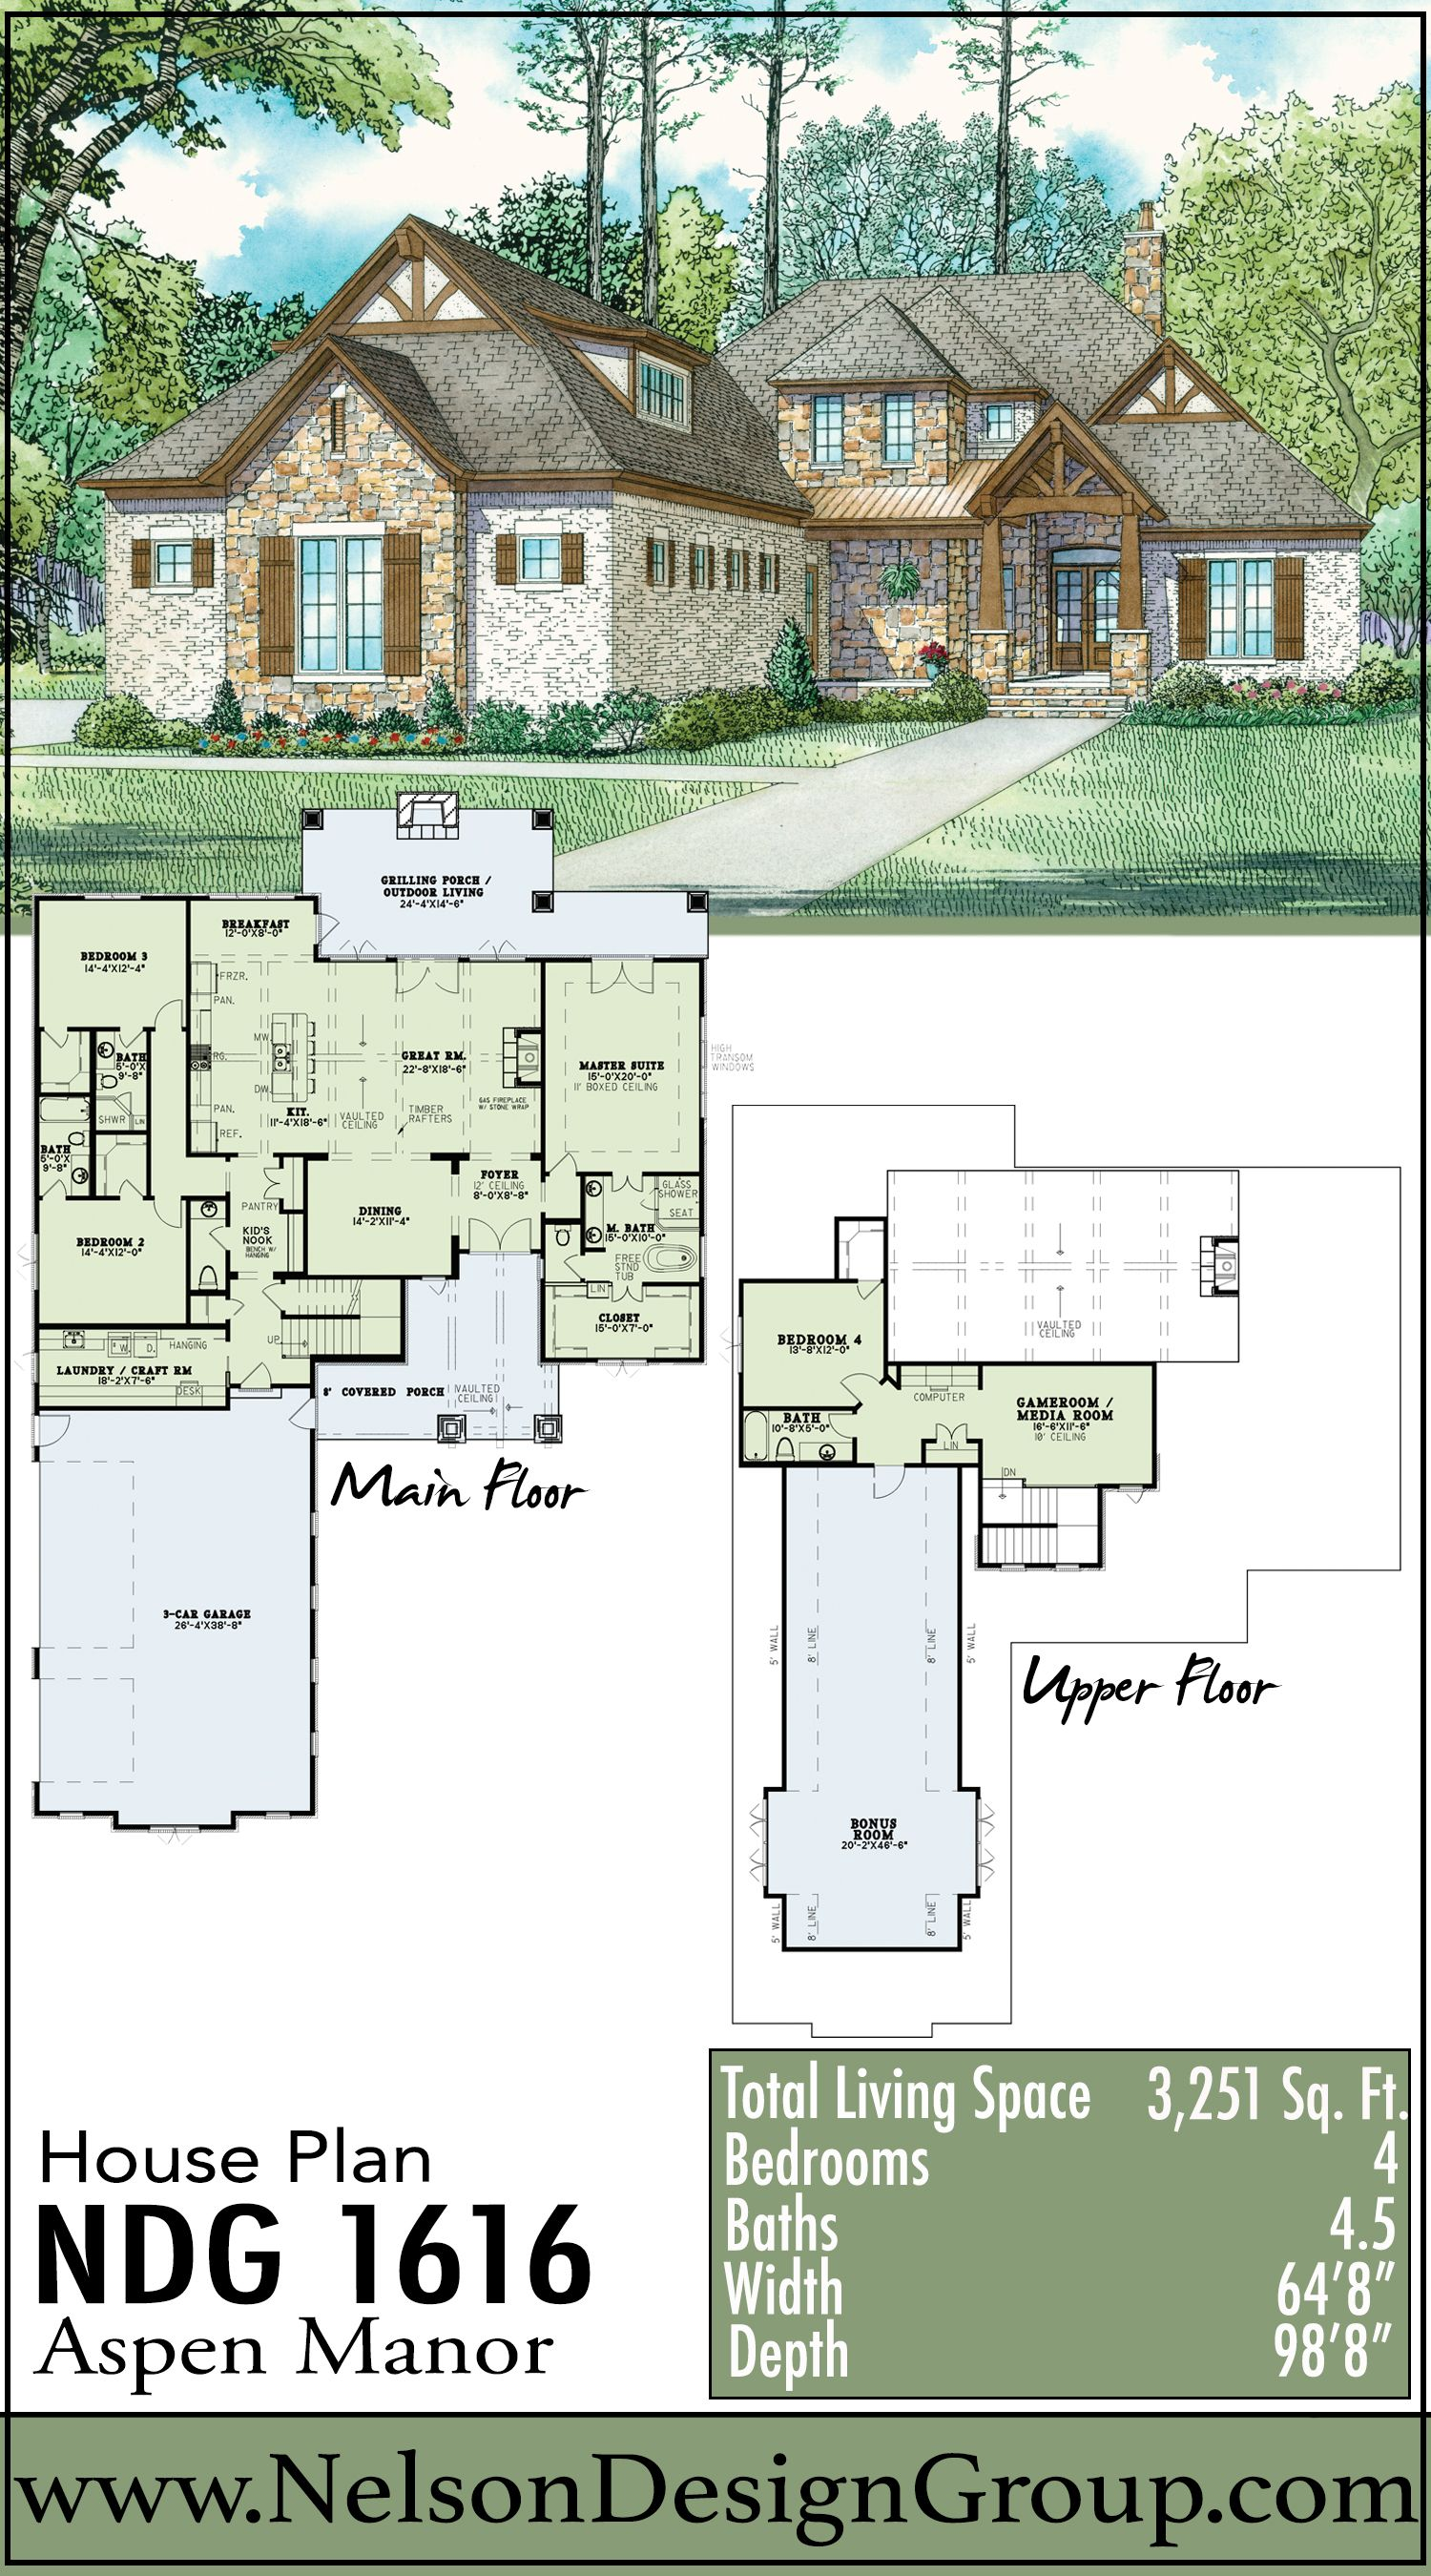 House Houses Home Homes Houseplan Houseplans Homeplan Homeplans Frenchcountry Craftsman Homesweeth Rustic House Plans Rustic House Beach House Decor